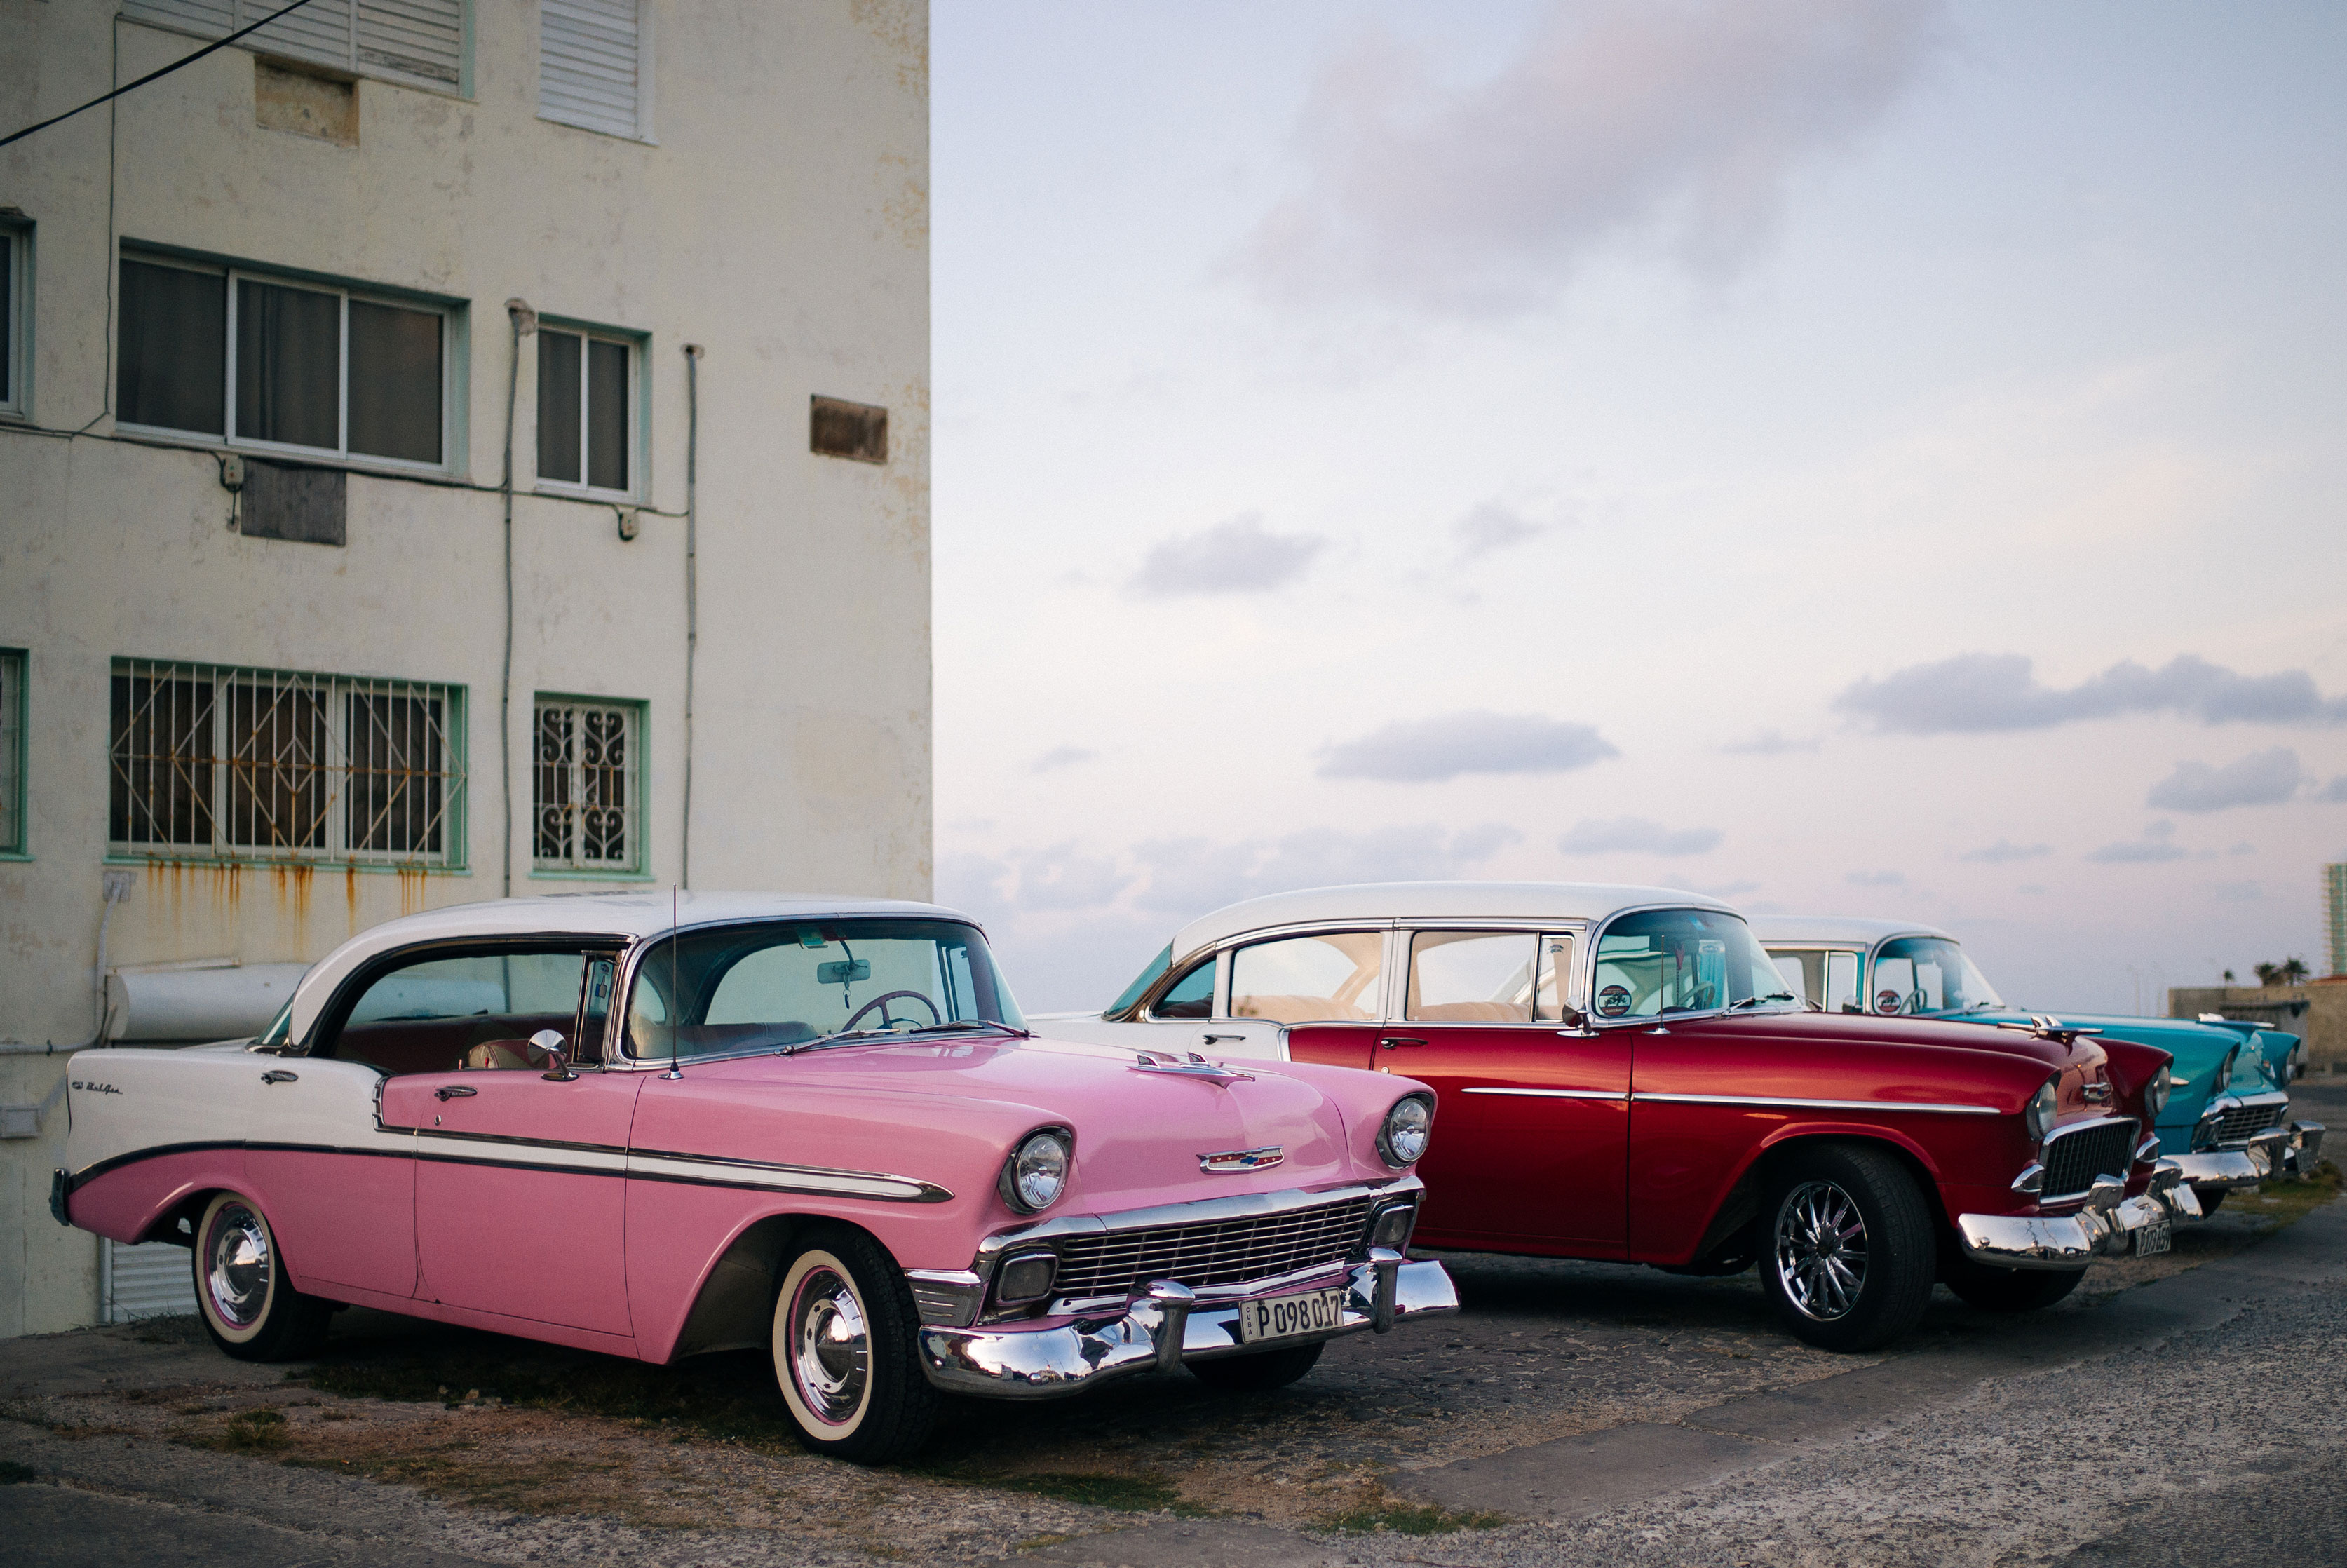 Car Culture in Cuba